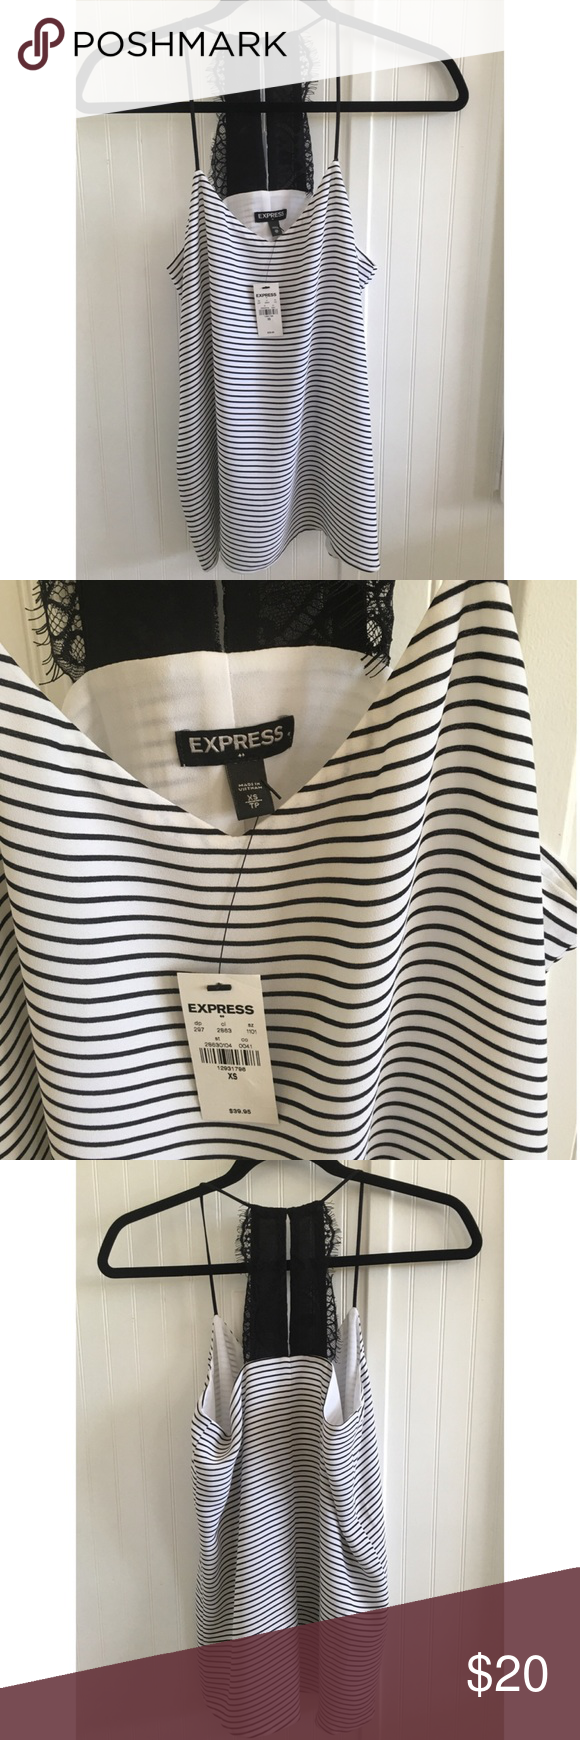 NWT Express Striped Cami Top New with tag. It is fully lined Cami Top with a lovely lace accent on the back. Express Tops Camisoles #stripedcamitops NWT Express Striped Cami Top New with tag. It is fully lined Cami Top with a lovely lace accent on the back. Express Tops Camisoles #stripedcamitops